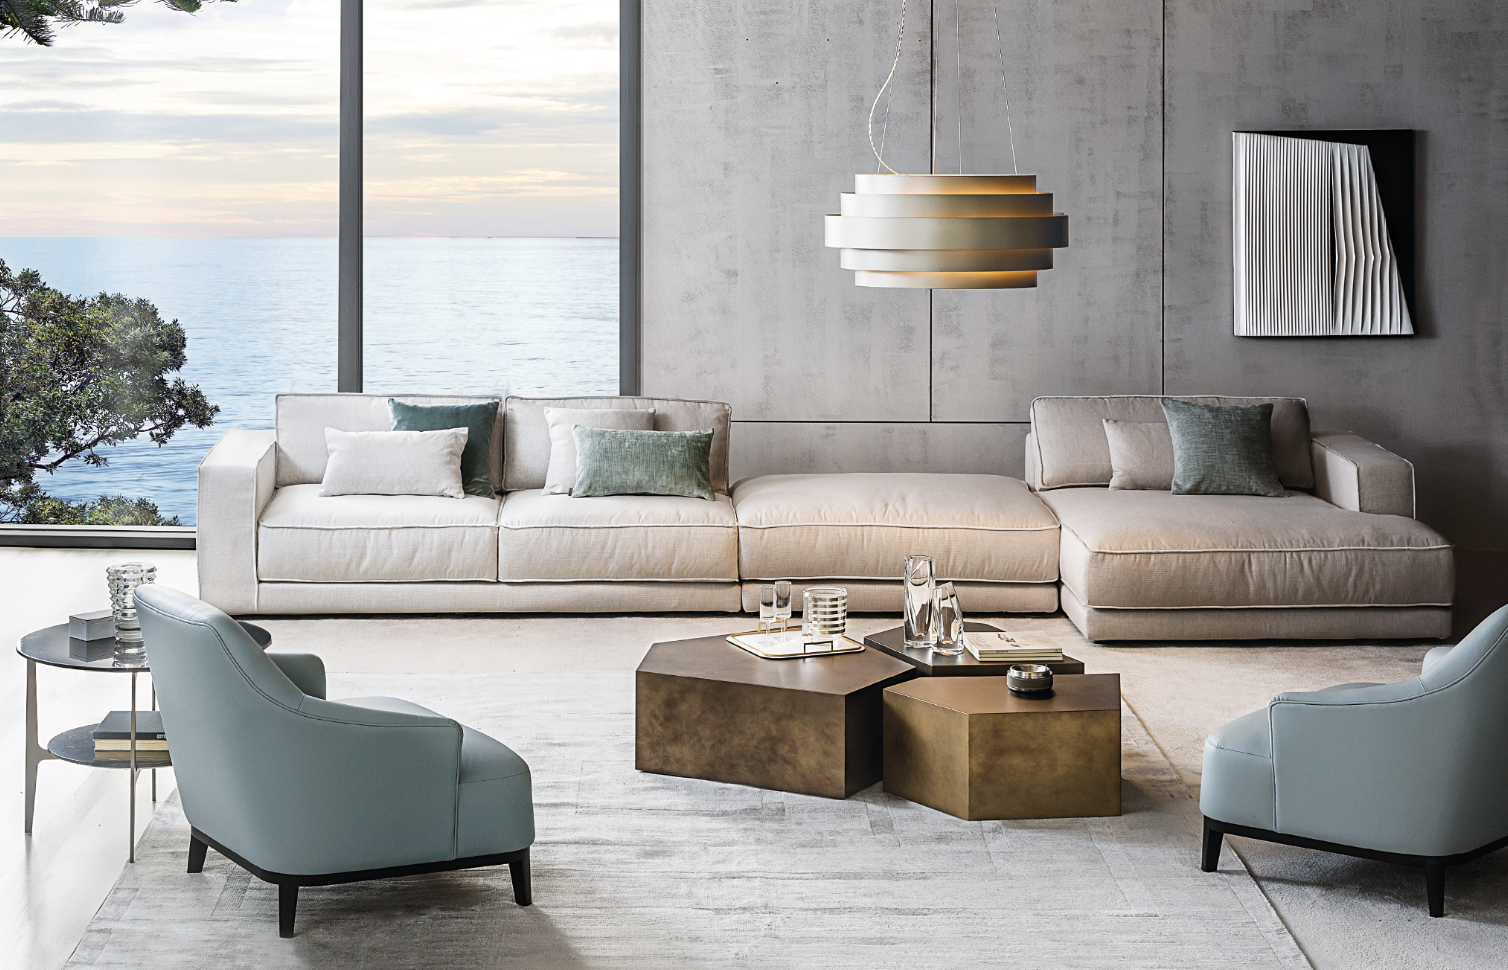 Living room - Sofas - Armchairs - coffee tables - Pendant Lamps